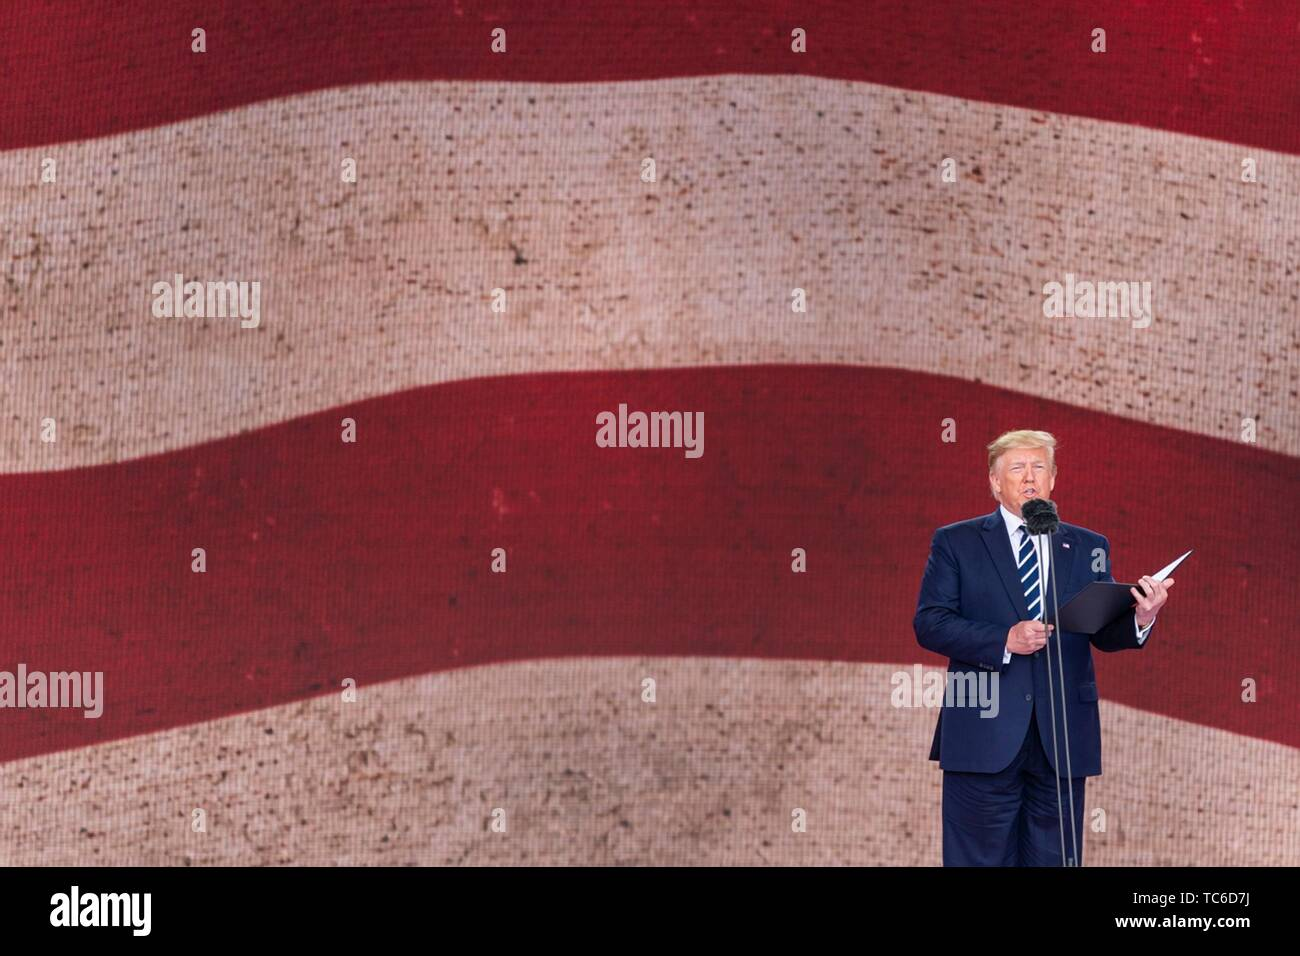 Portsmouth, UK. 05th June, 2019. U.S President Donald Trump addresses an event to marking the 75th anniversary of D-Day June 5, 2019 in Portsmouth, England. World leaders gathered on the south coast of England where troops departed for the D-Day assault 75-years-ago. Credit: Planetpix/Alamy Live News - Stock Image